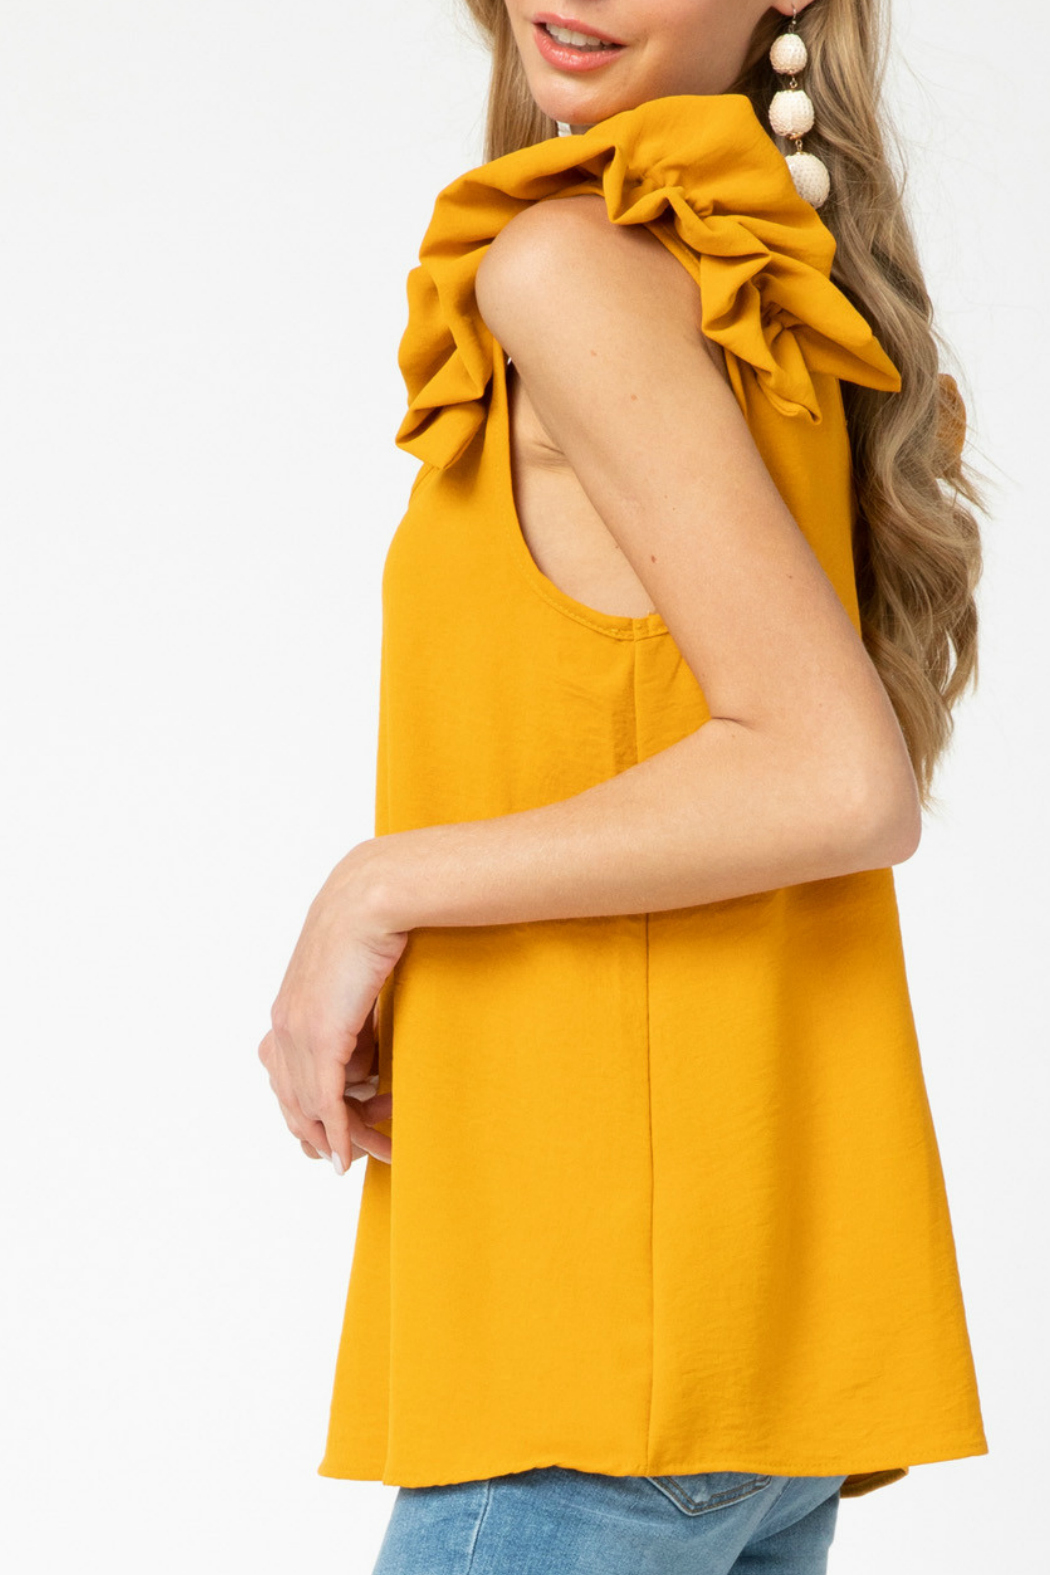 entro  v-neck top featuring ruffle detail - Front Full Image